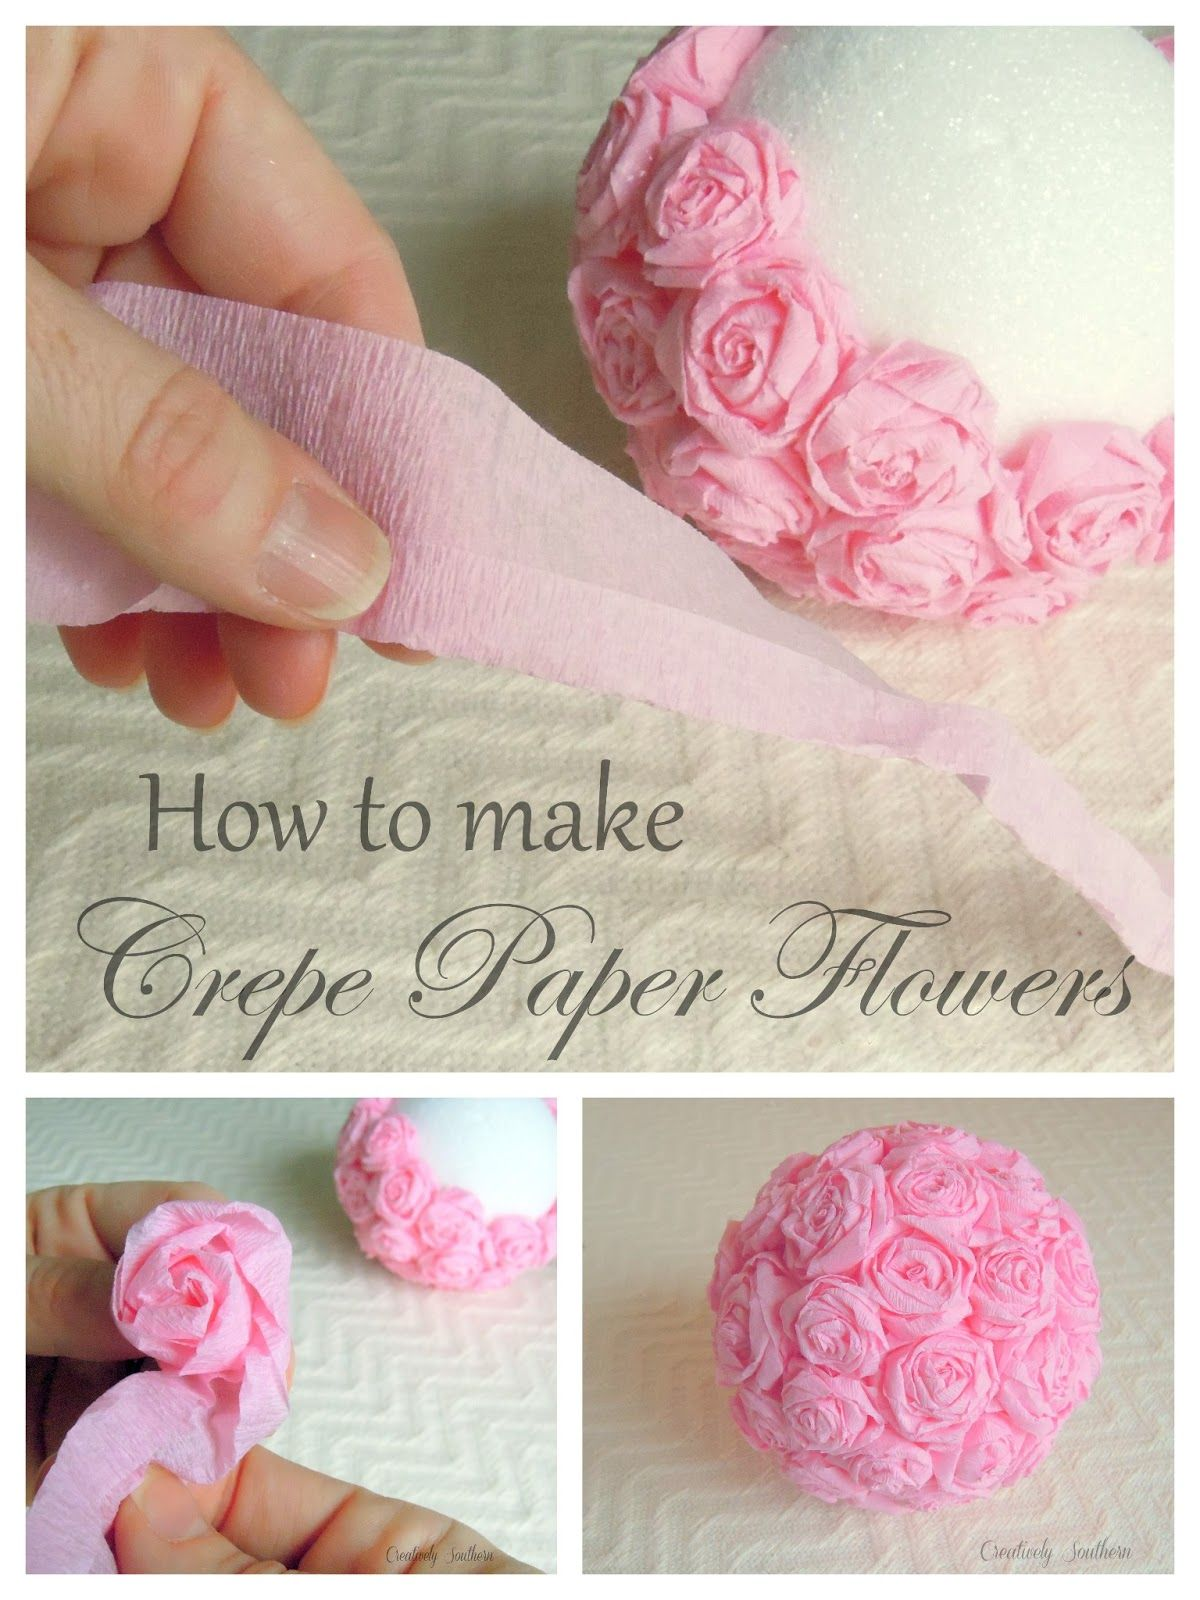 How To Make Crepe Paper Christmas Decorations : Crepe paper flowers craft idea crepes and